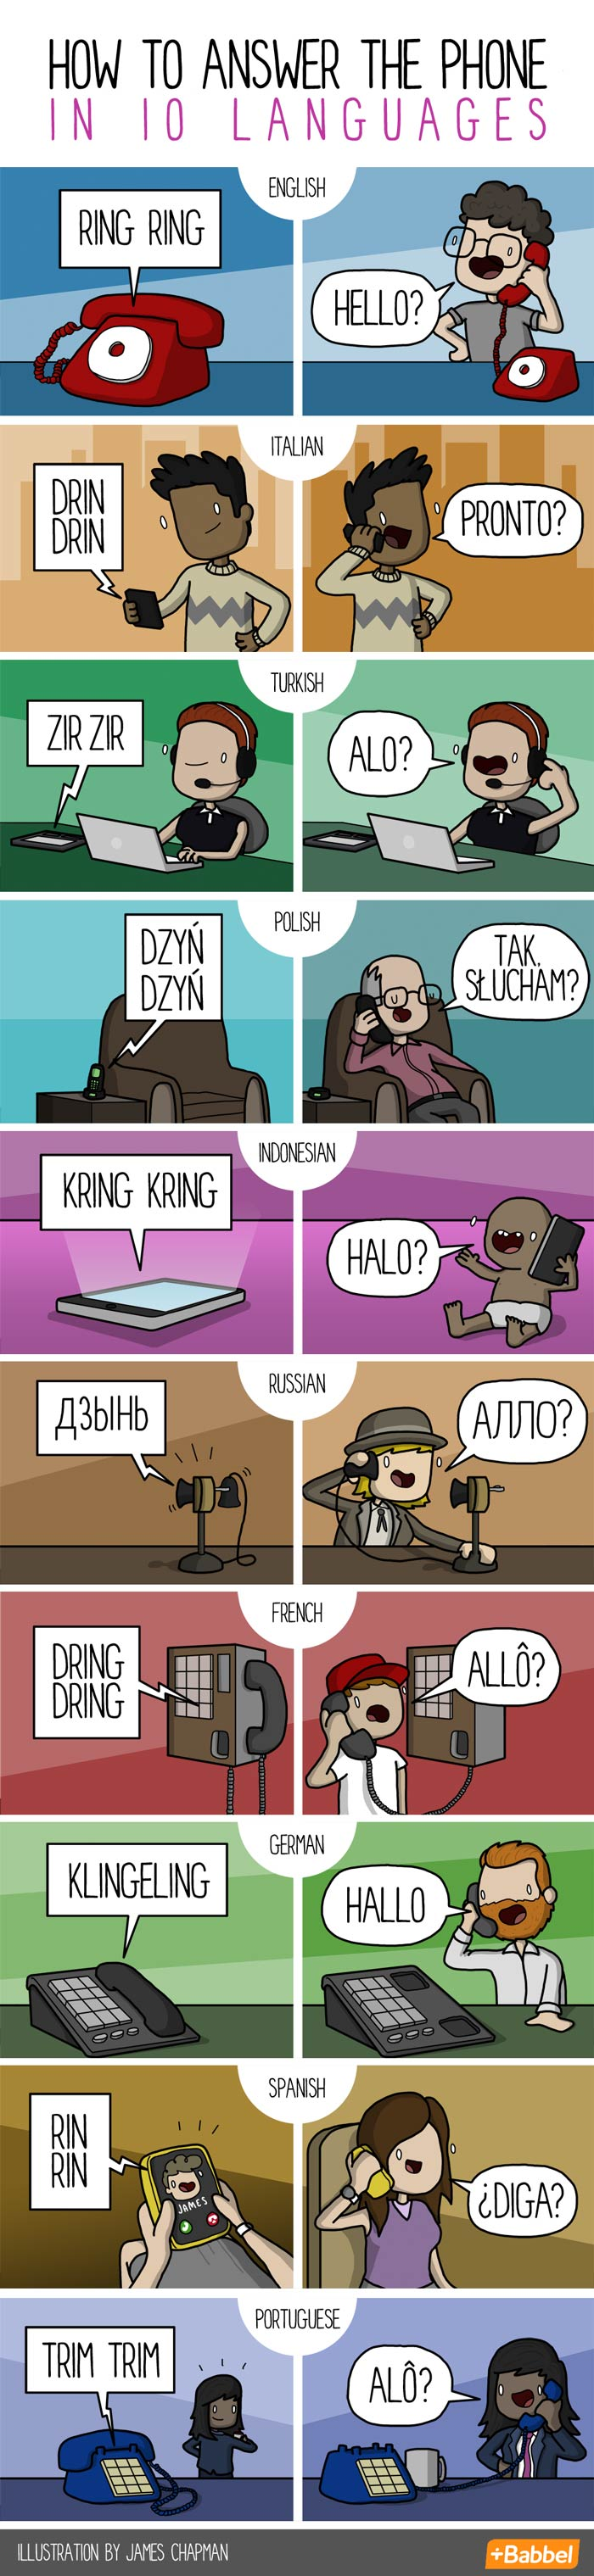 How to answer the phone in different languages babbel magazine kristyandbryce Choice Image